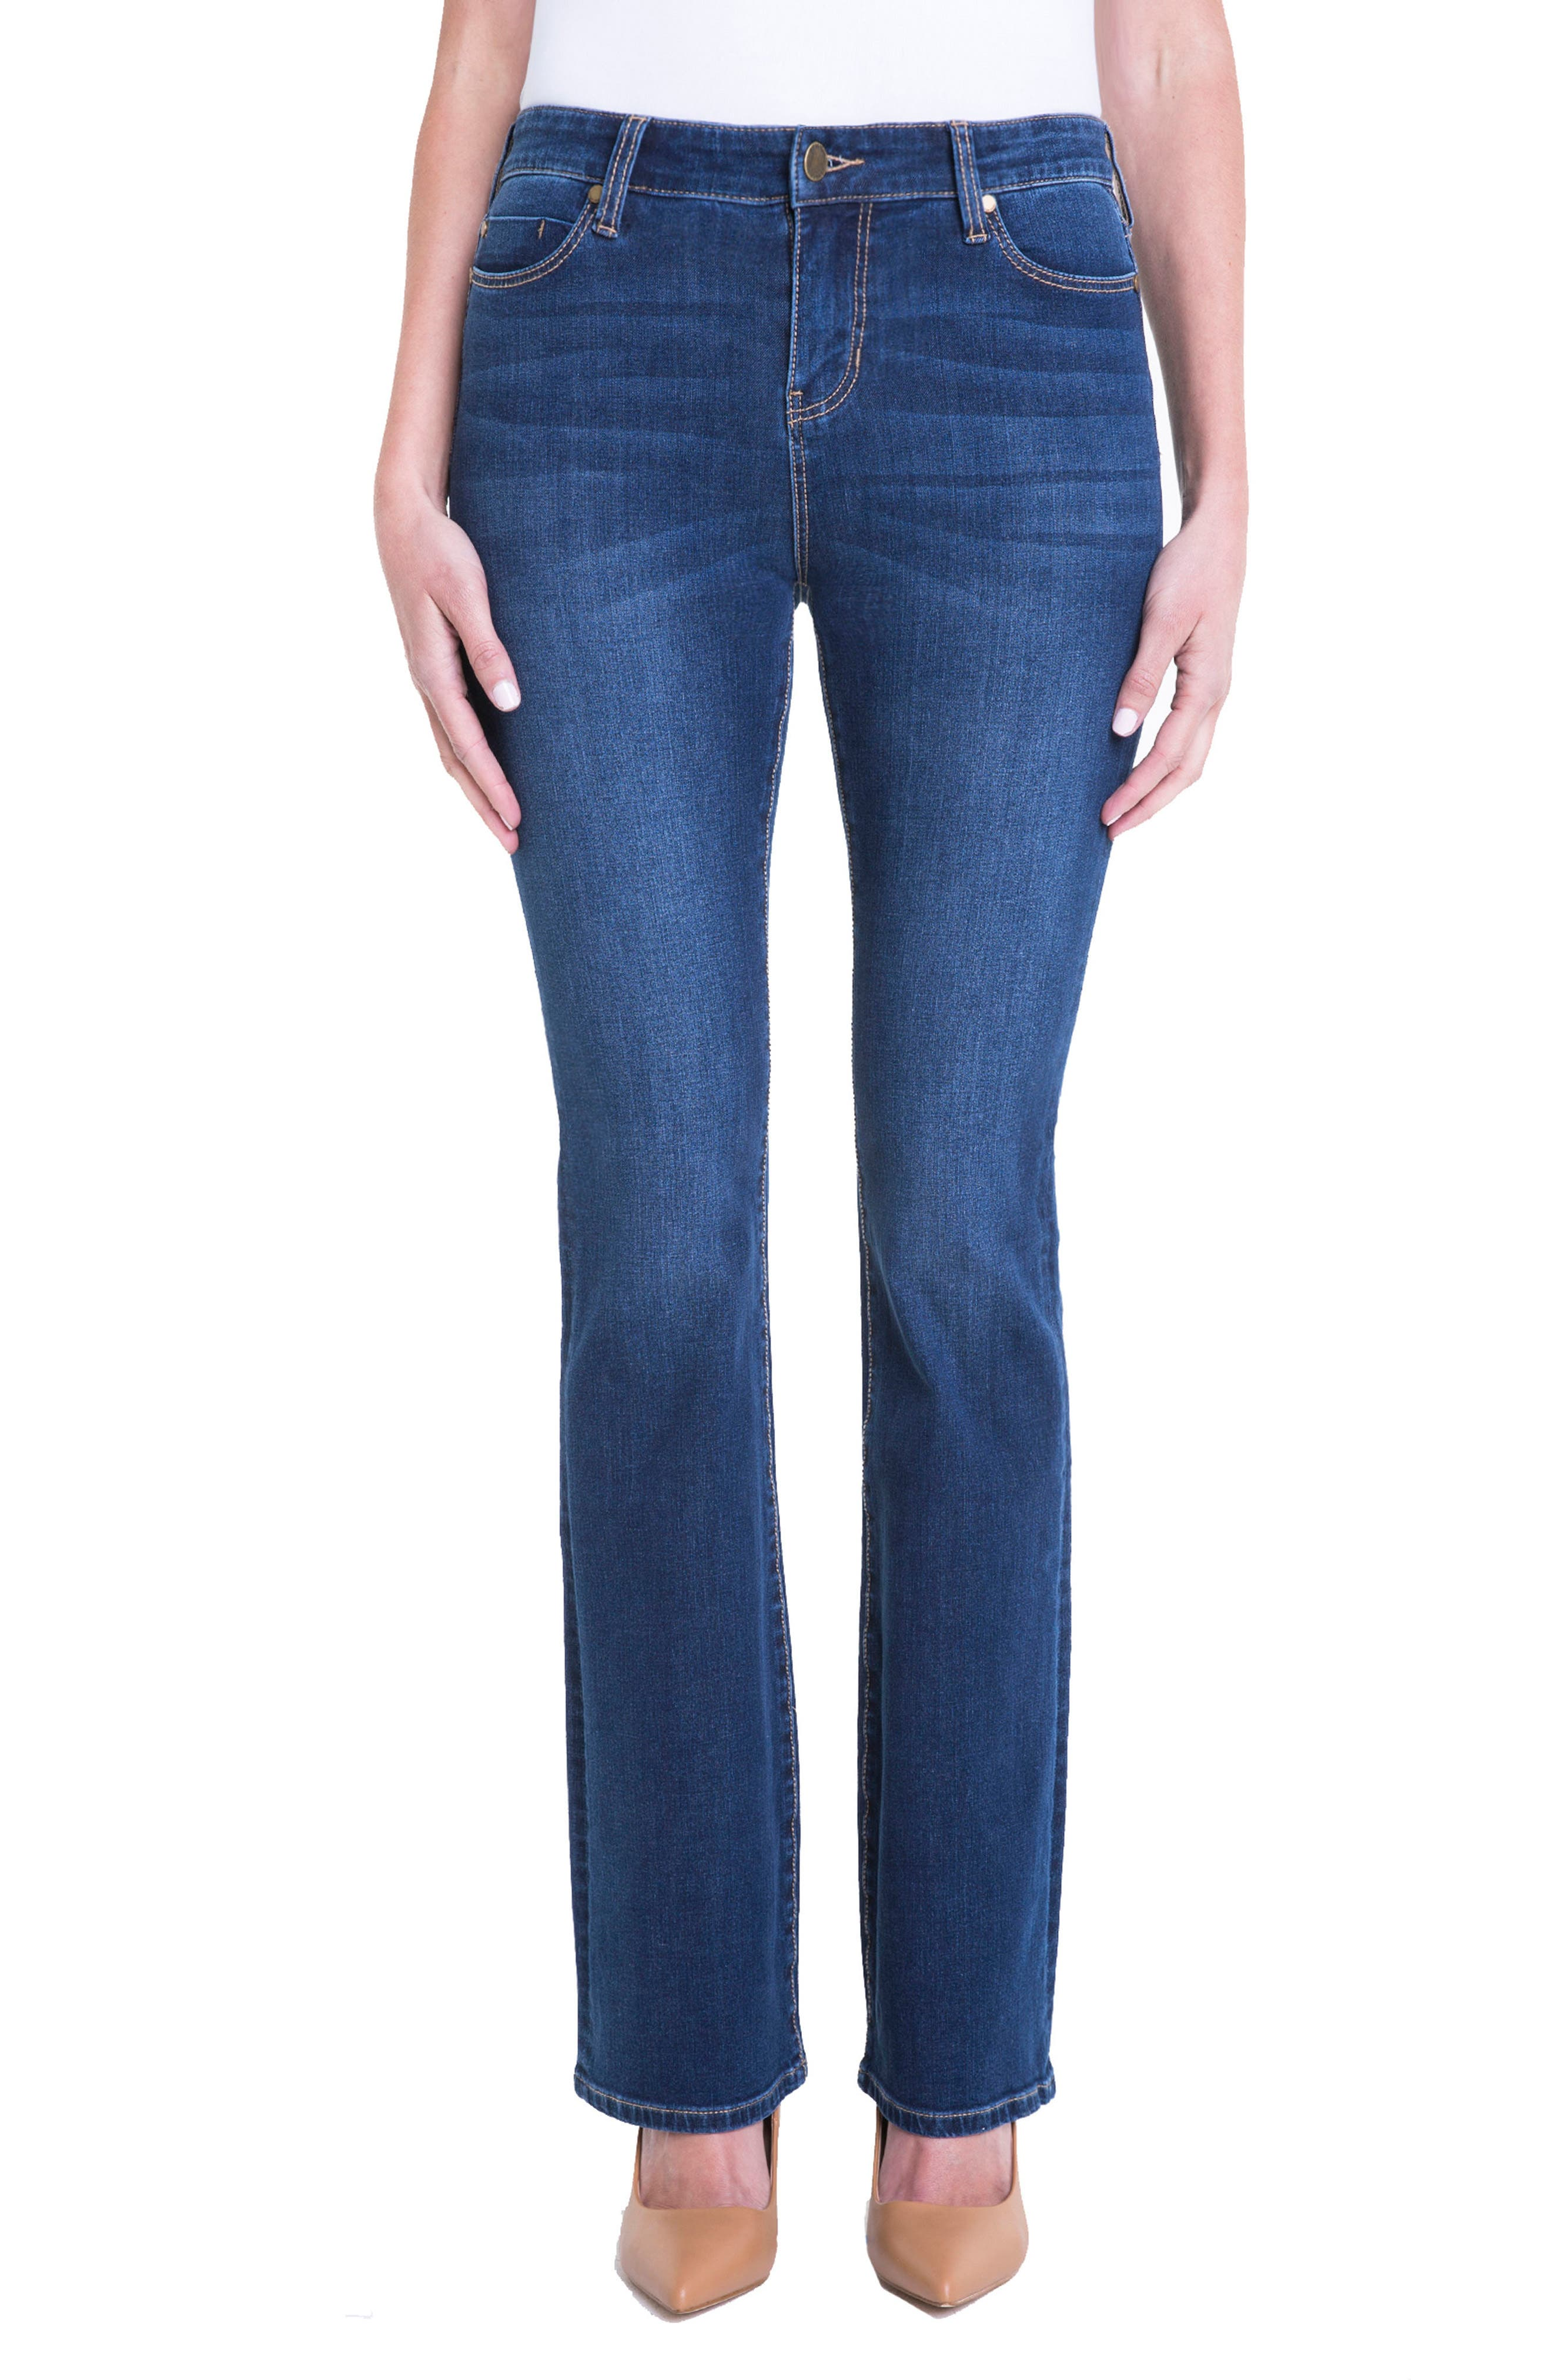 Main Image - Liverpool Jeans Company 'Lucy' Stretch Bootcut Jeans (Regular & Petite)